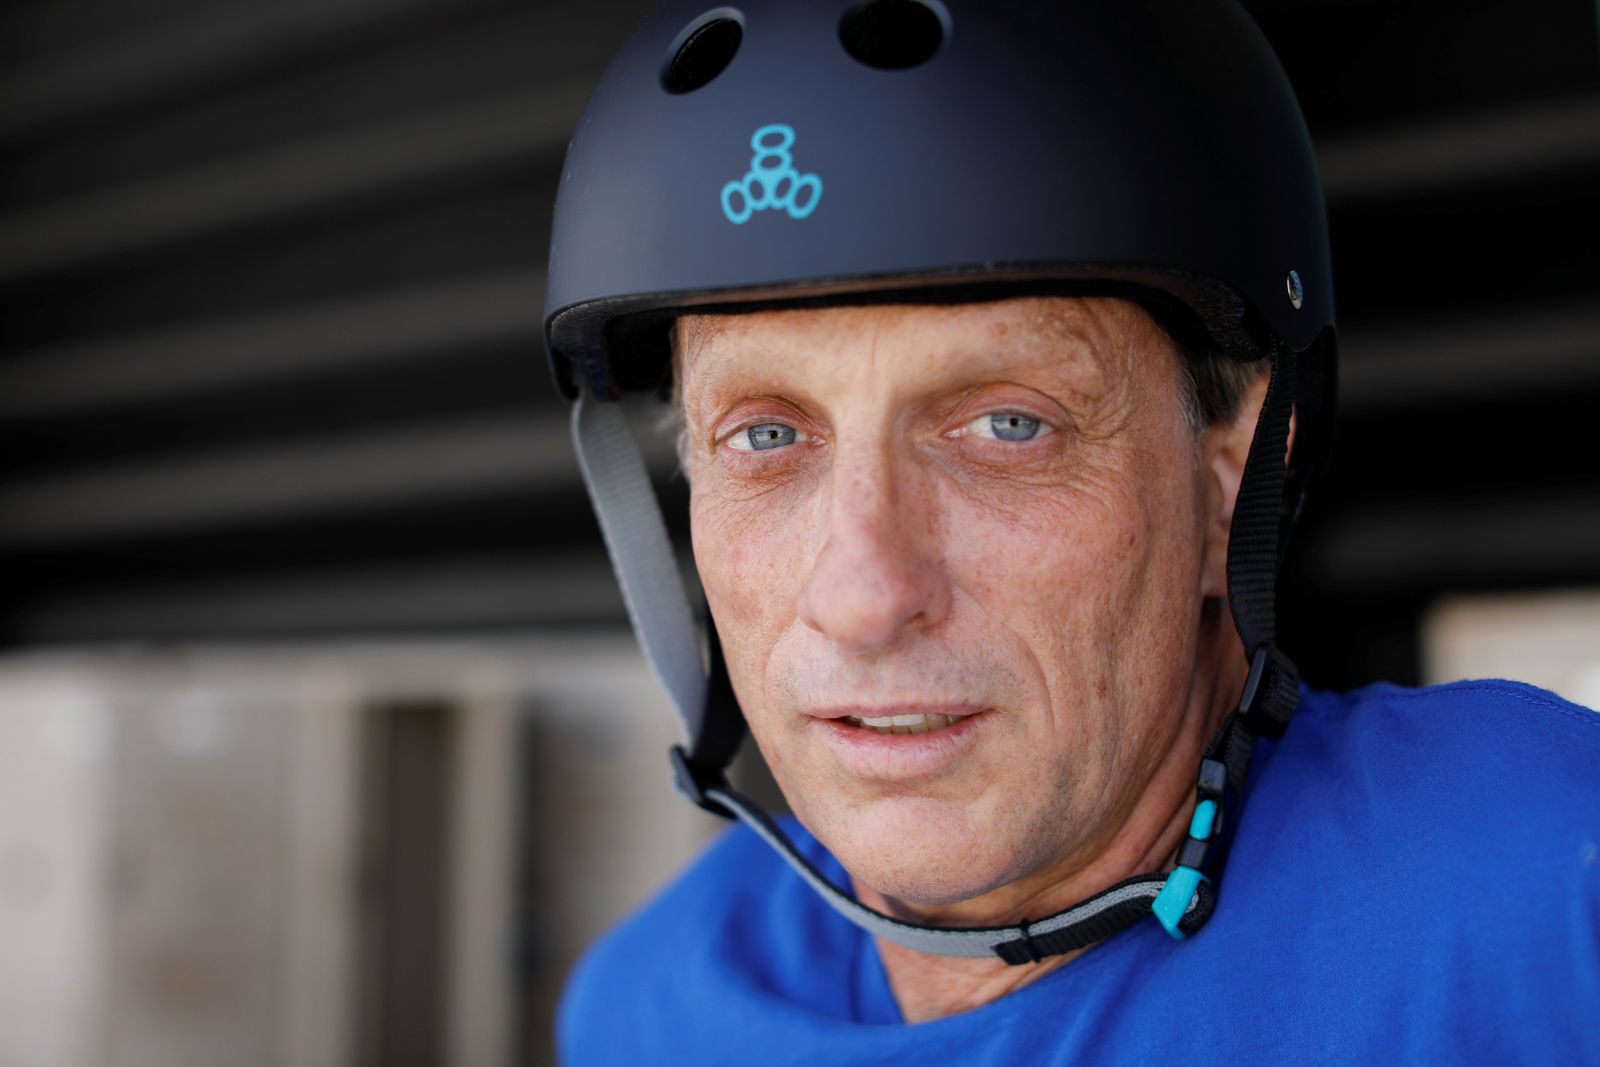 Two days before his 50th birthday professional skateboarder Tony Hawk poses for a portrait at the YMCA Skatepark in Encinitas, California